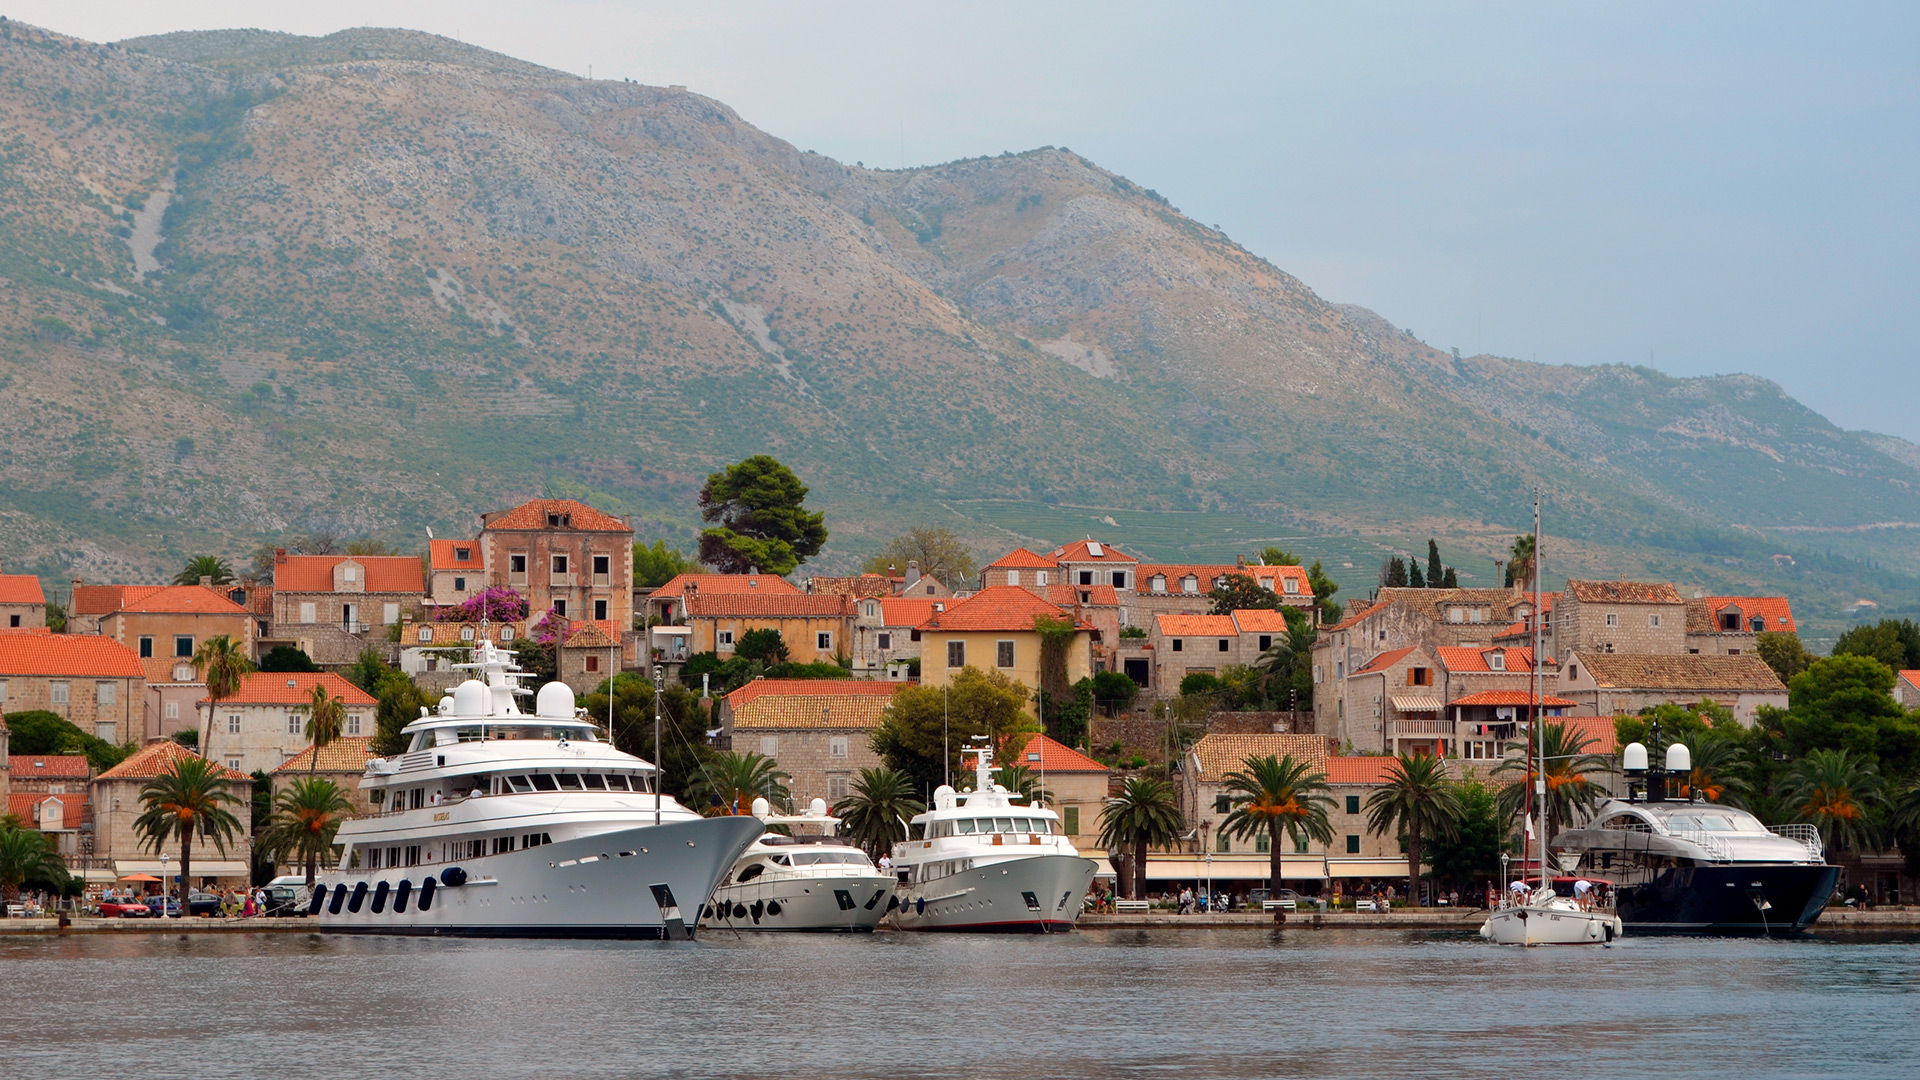 Yacht parking, Cavtat, Croatia